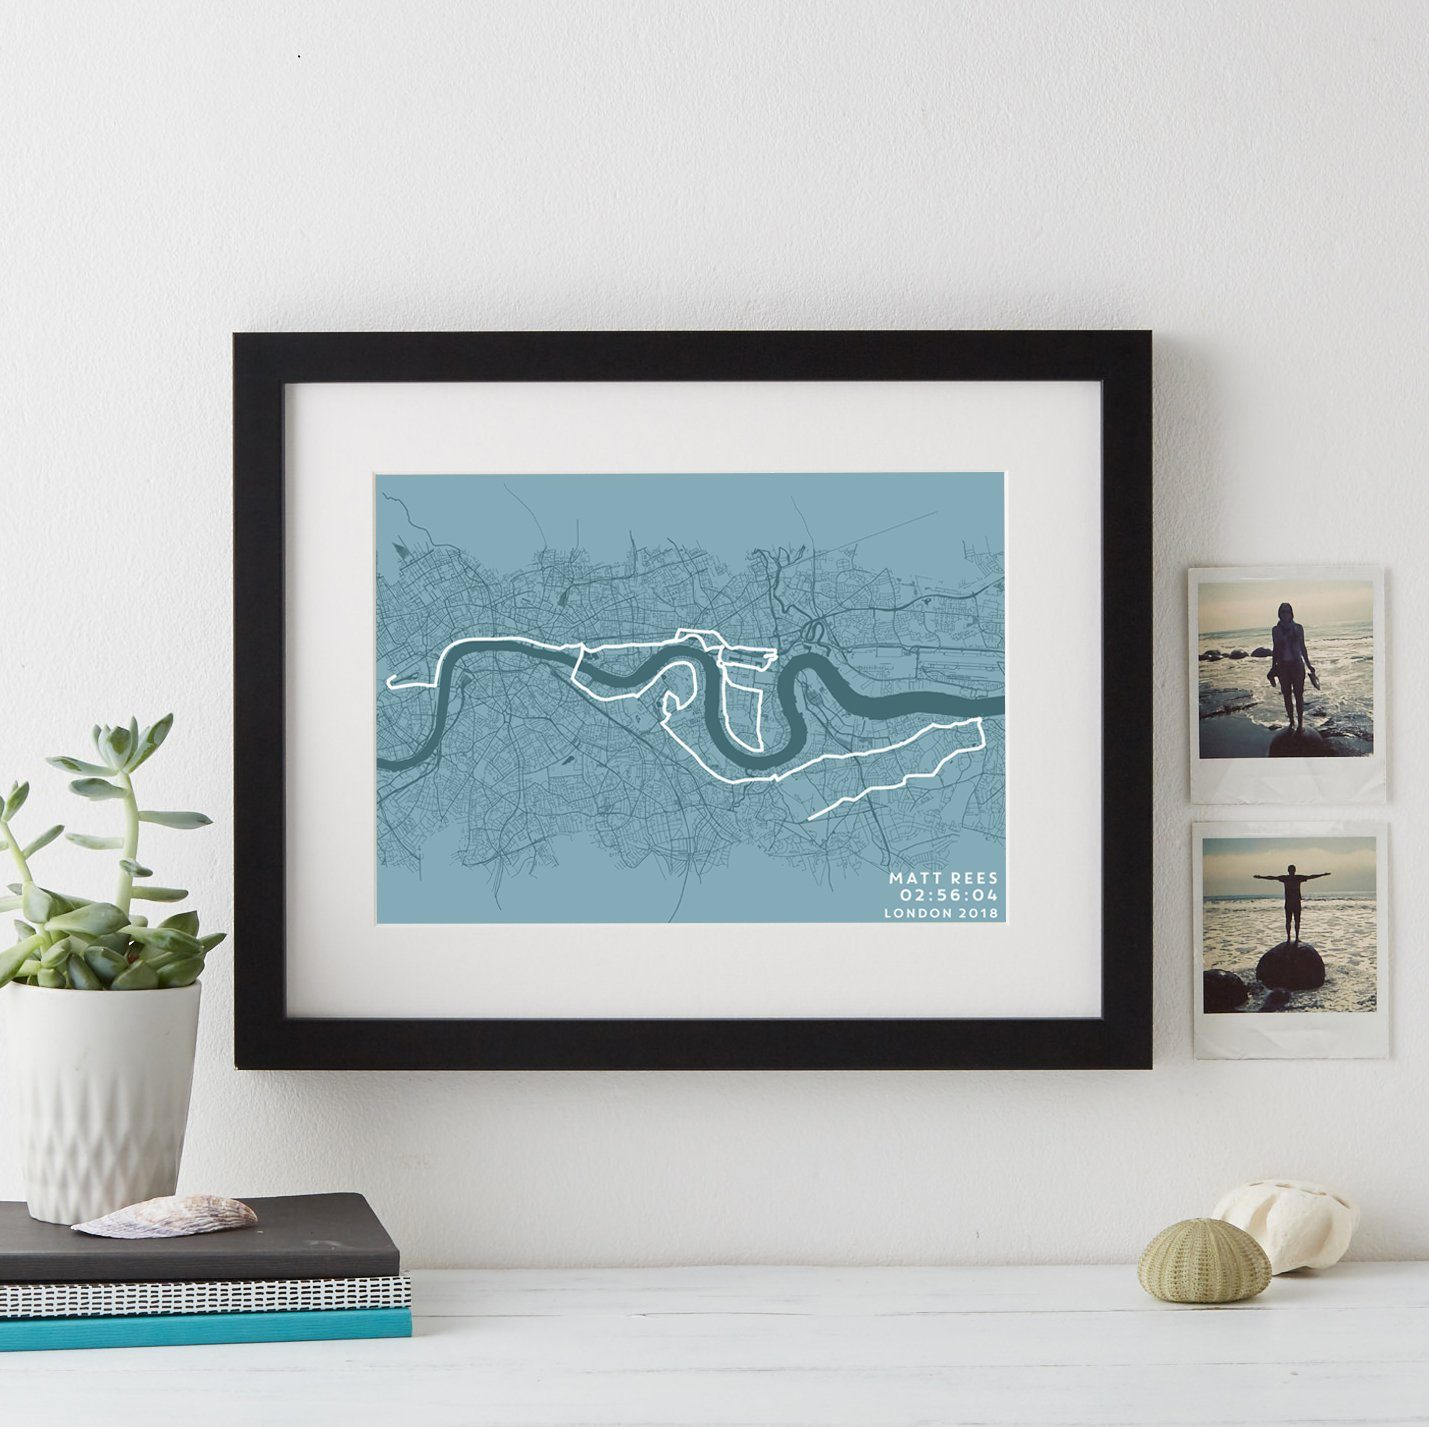 London Marathon Route and Time Print  Print - Betsy Benn